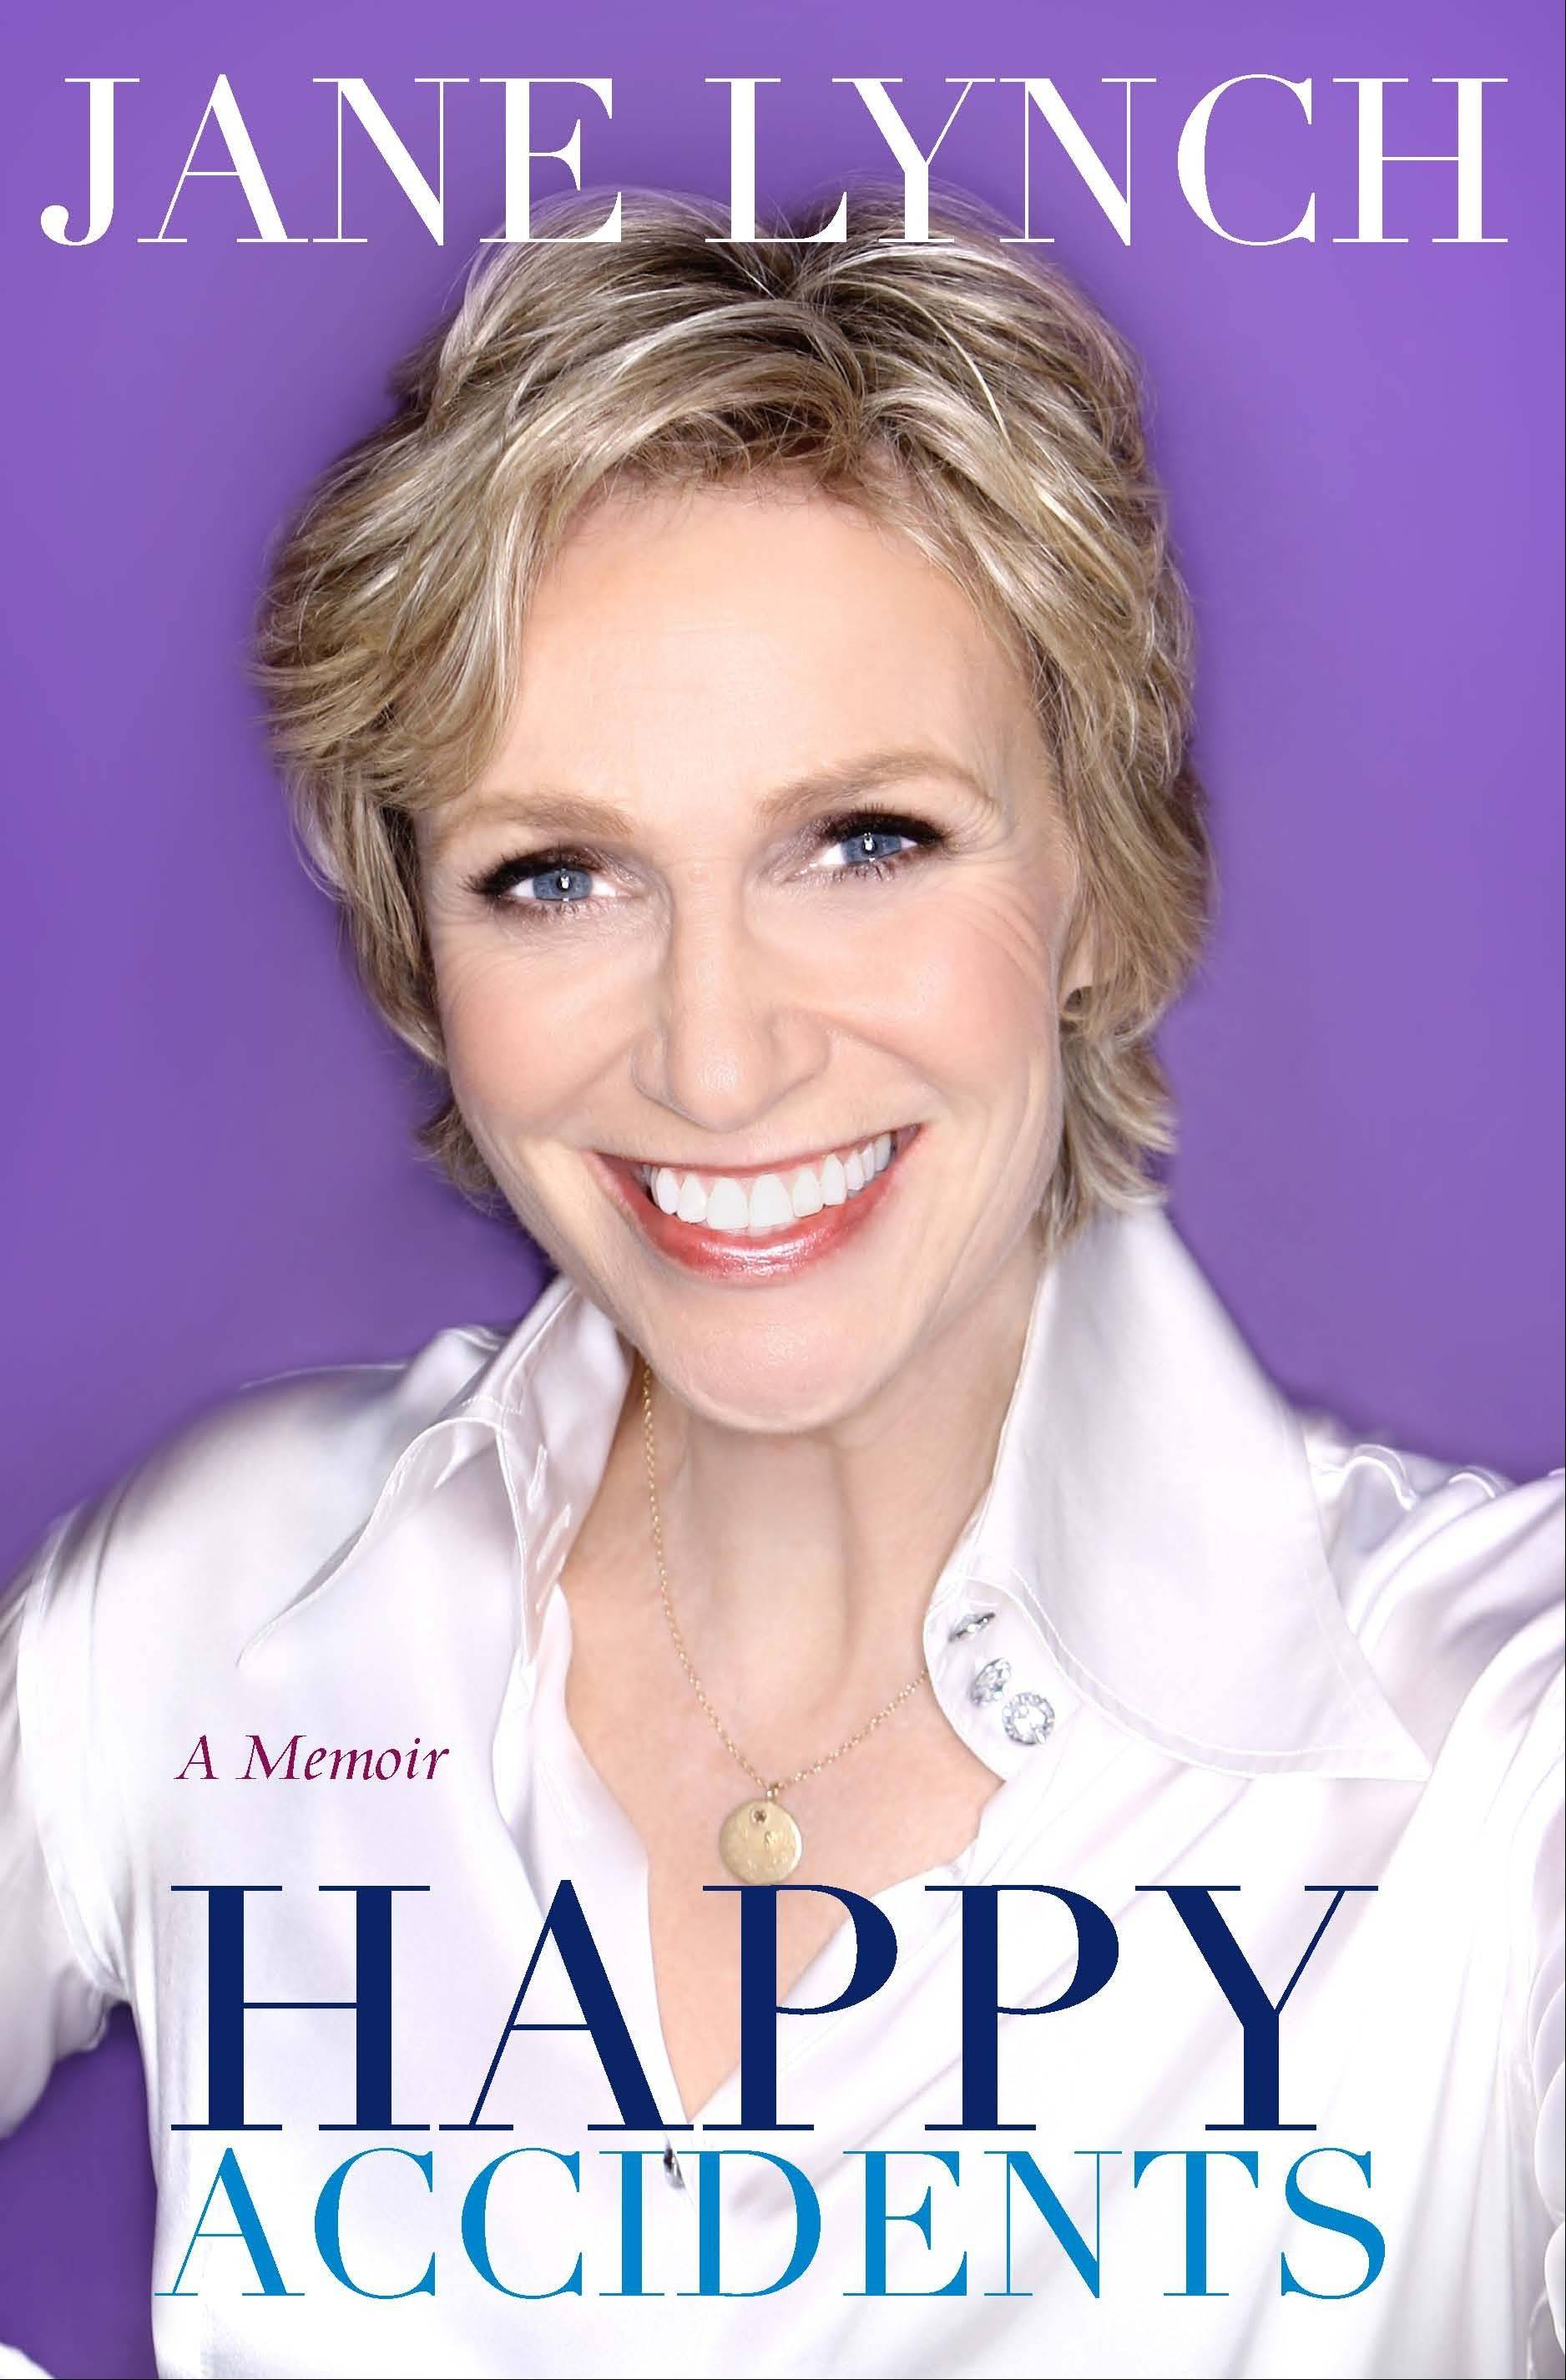 """Happy Accidents"" is Jane Lynch's just-released memoir."